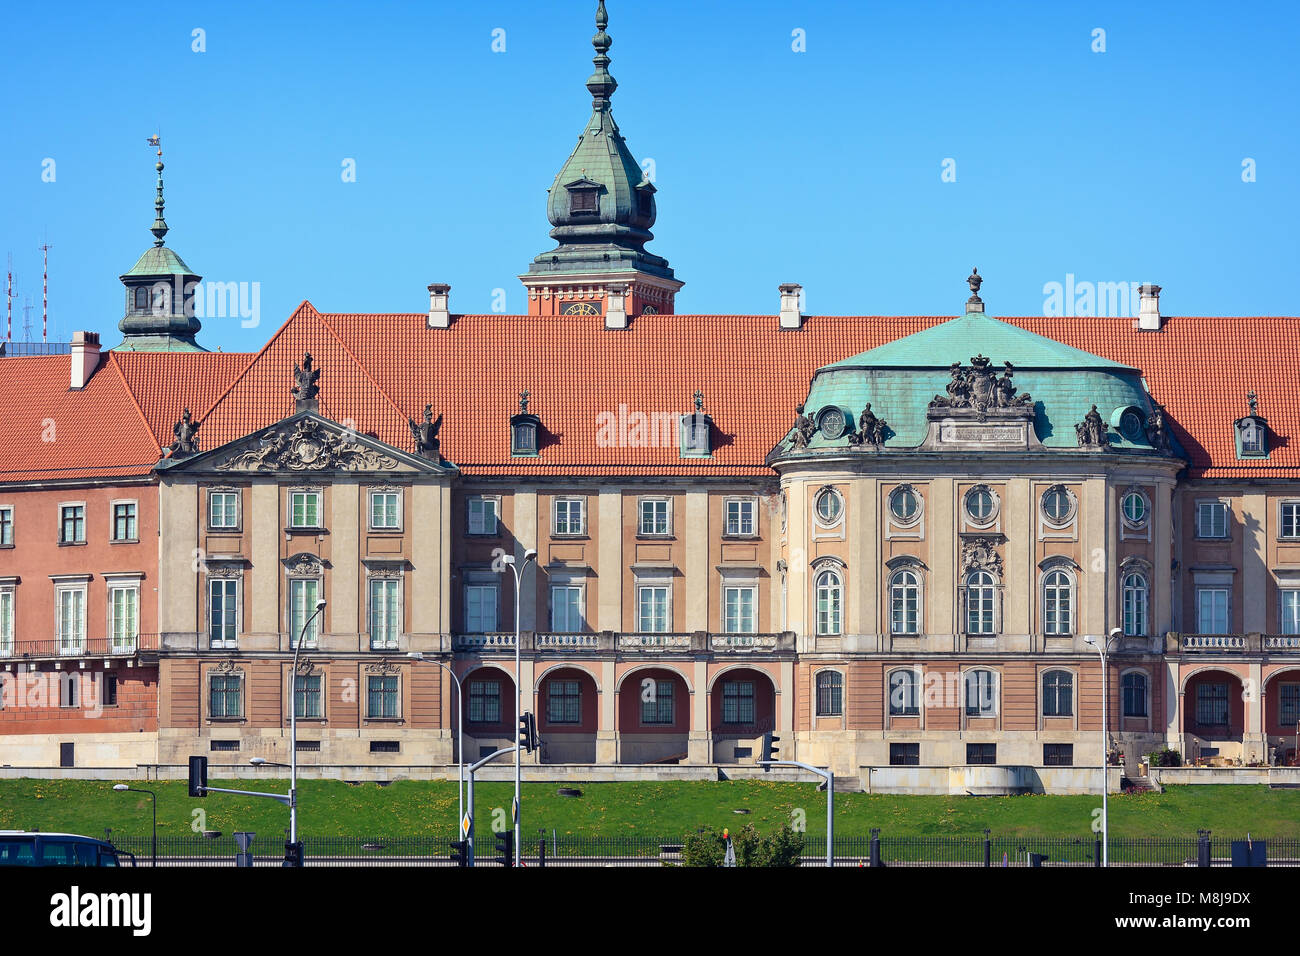 Warsaw's Royal Castle (14th century), residence of the Polish monarchs. Poland Stock Photo